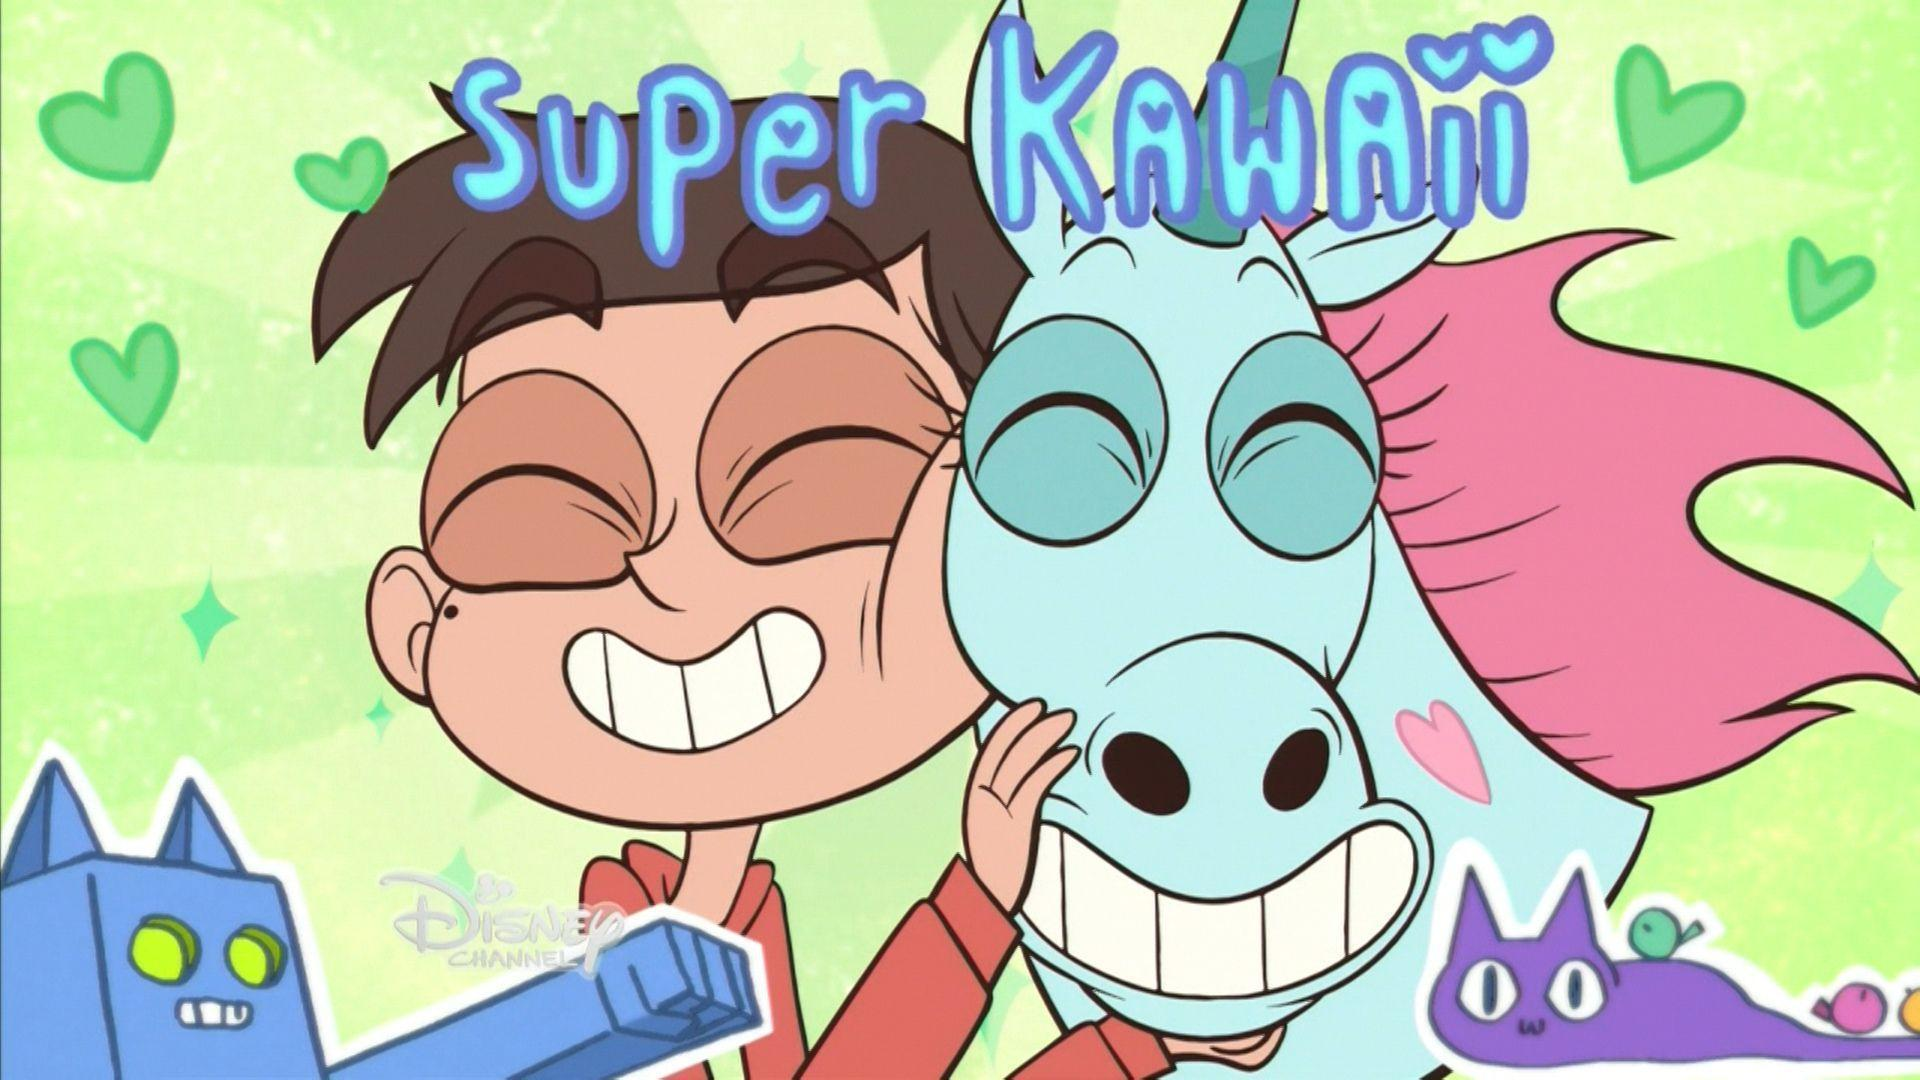 Super Kawaii | Star vs. the Forces of Evil | ᔕᐯTᖴOE | Pinterest ...